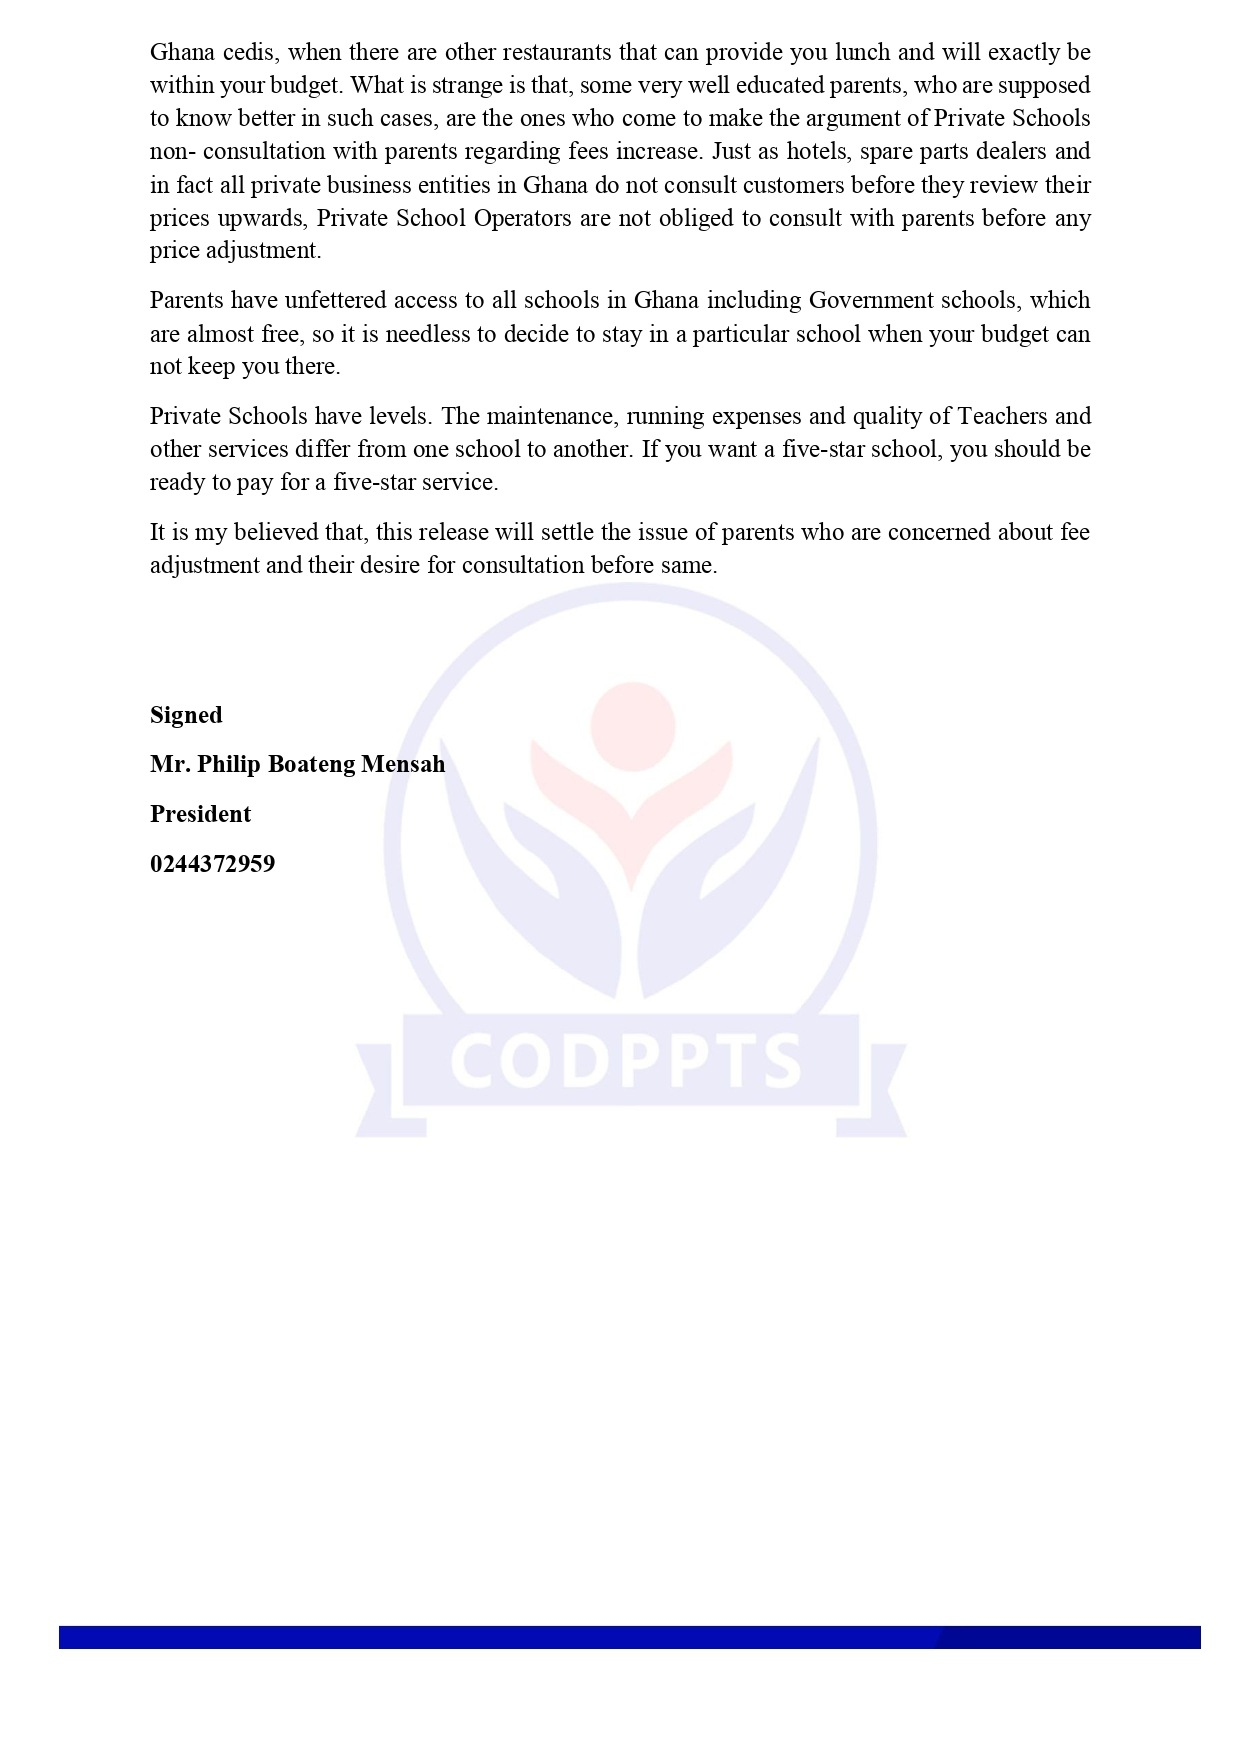 Press Release - Page 2